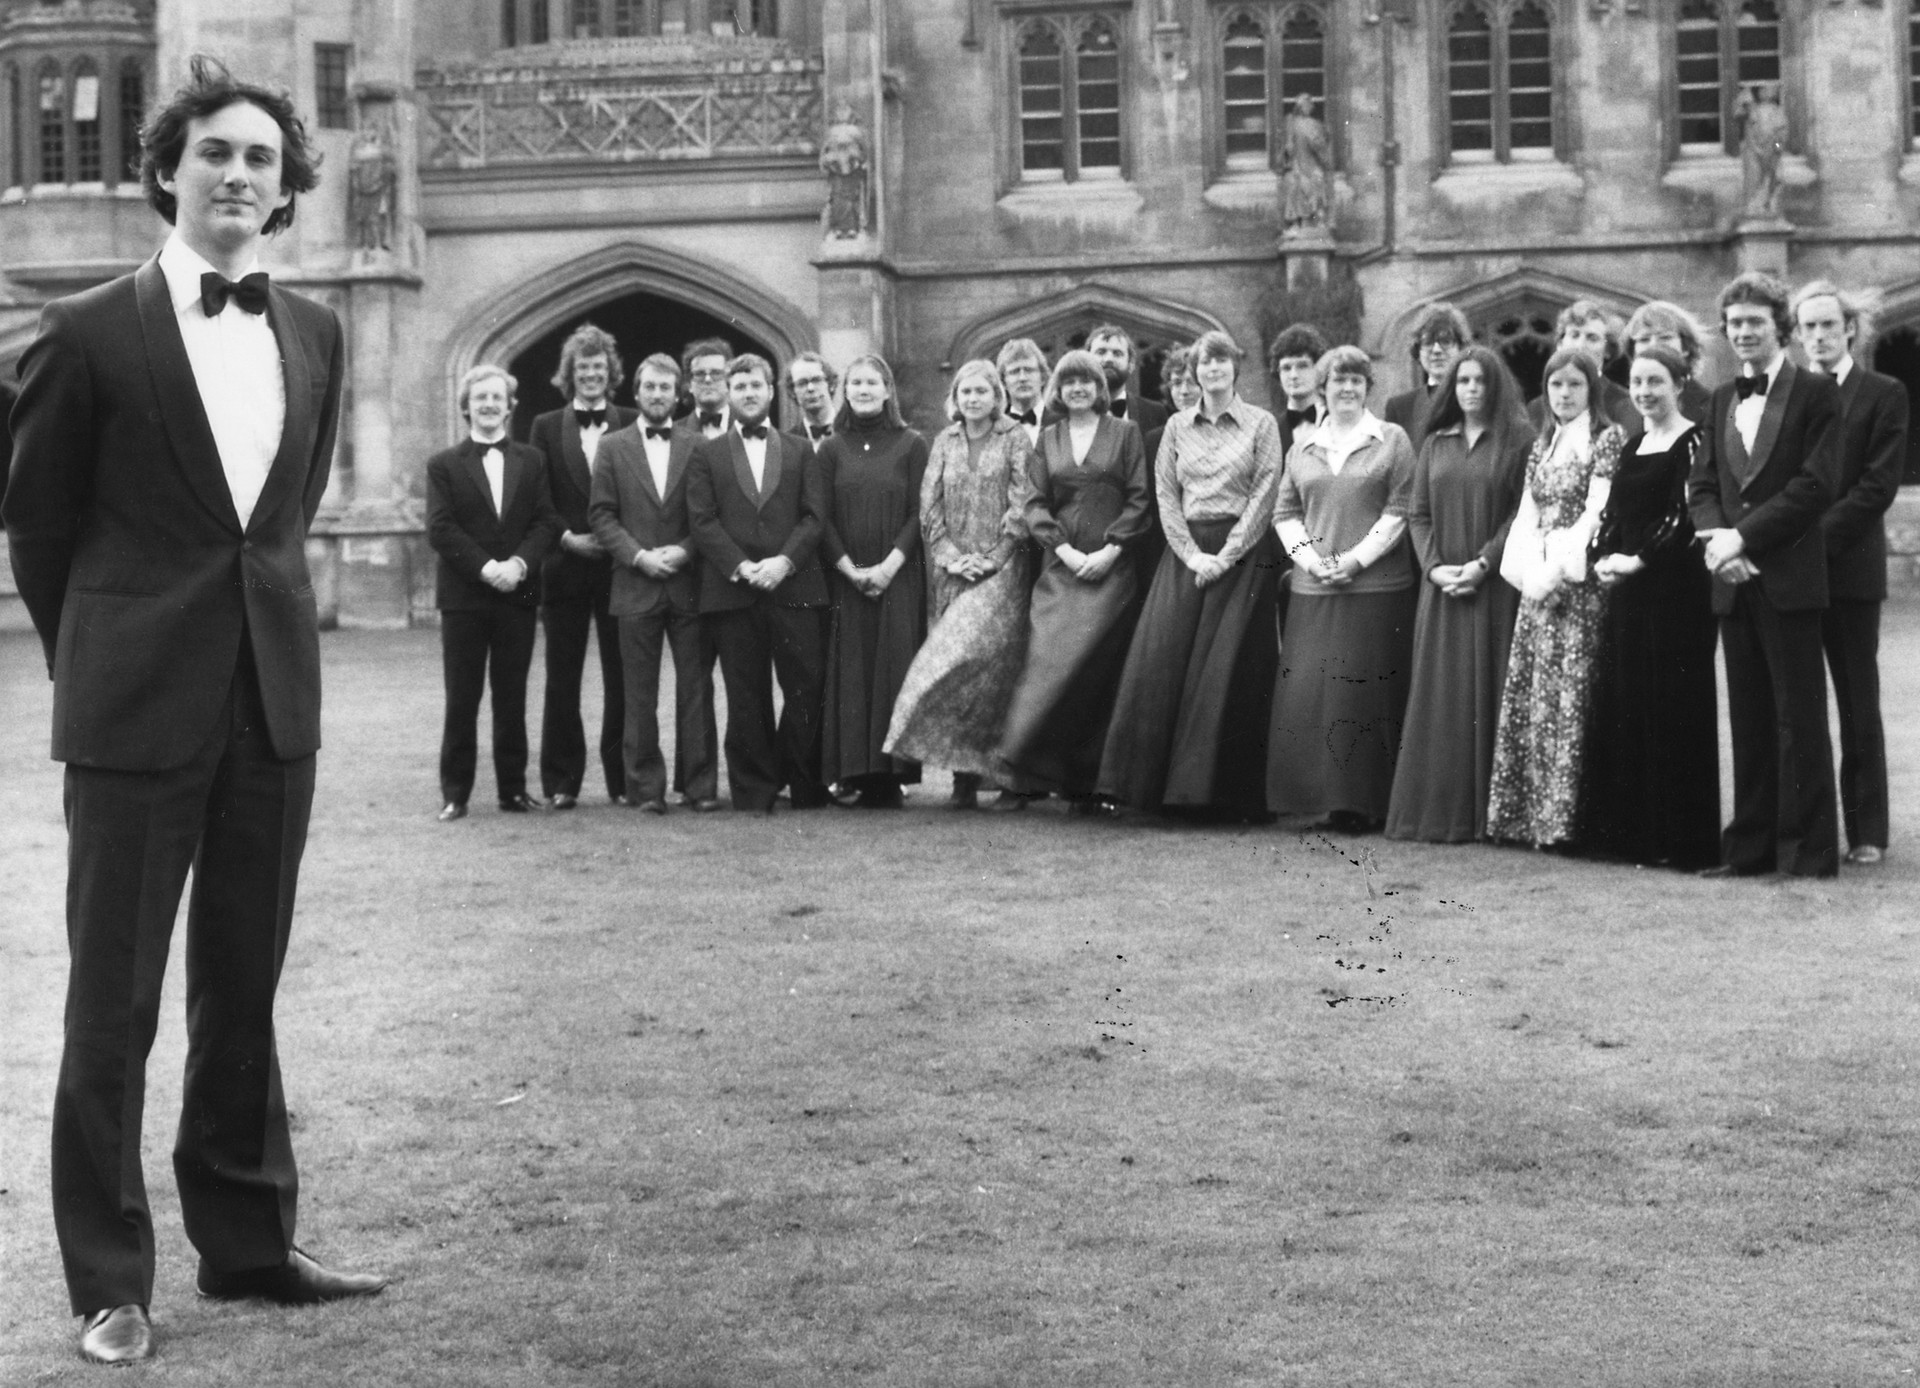 The Tallis Scholars in Oxford, 1977